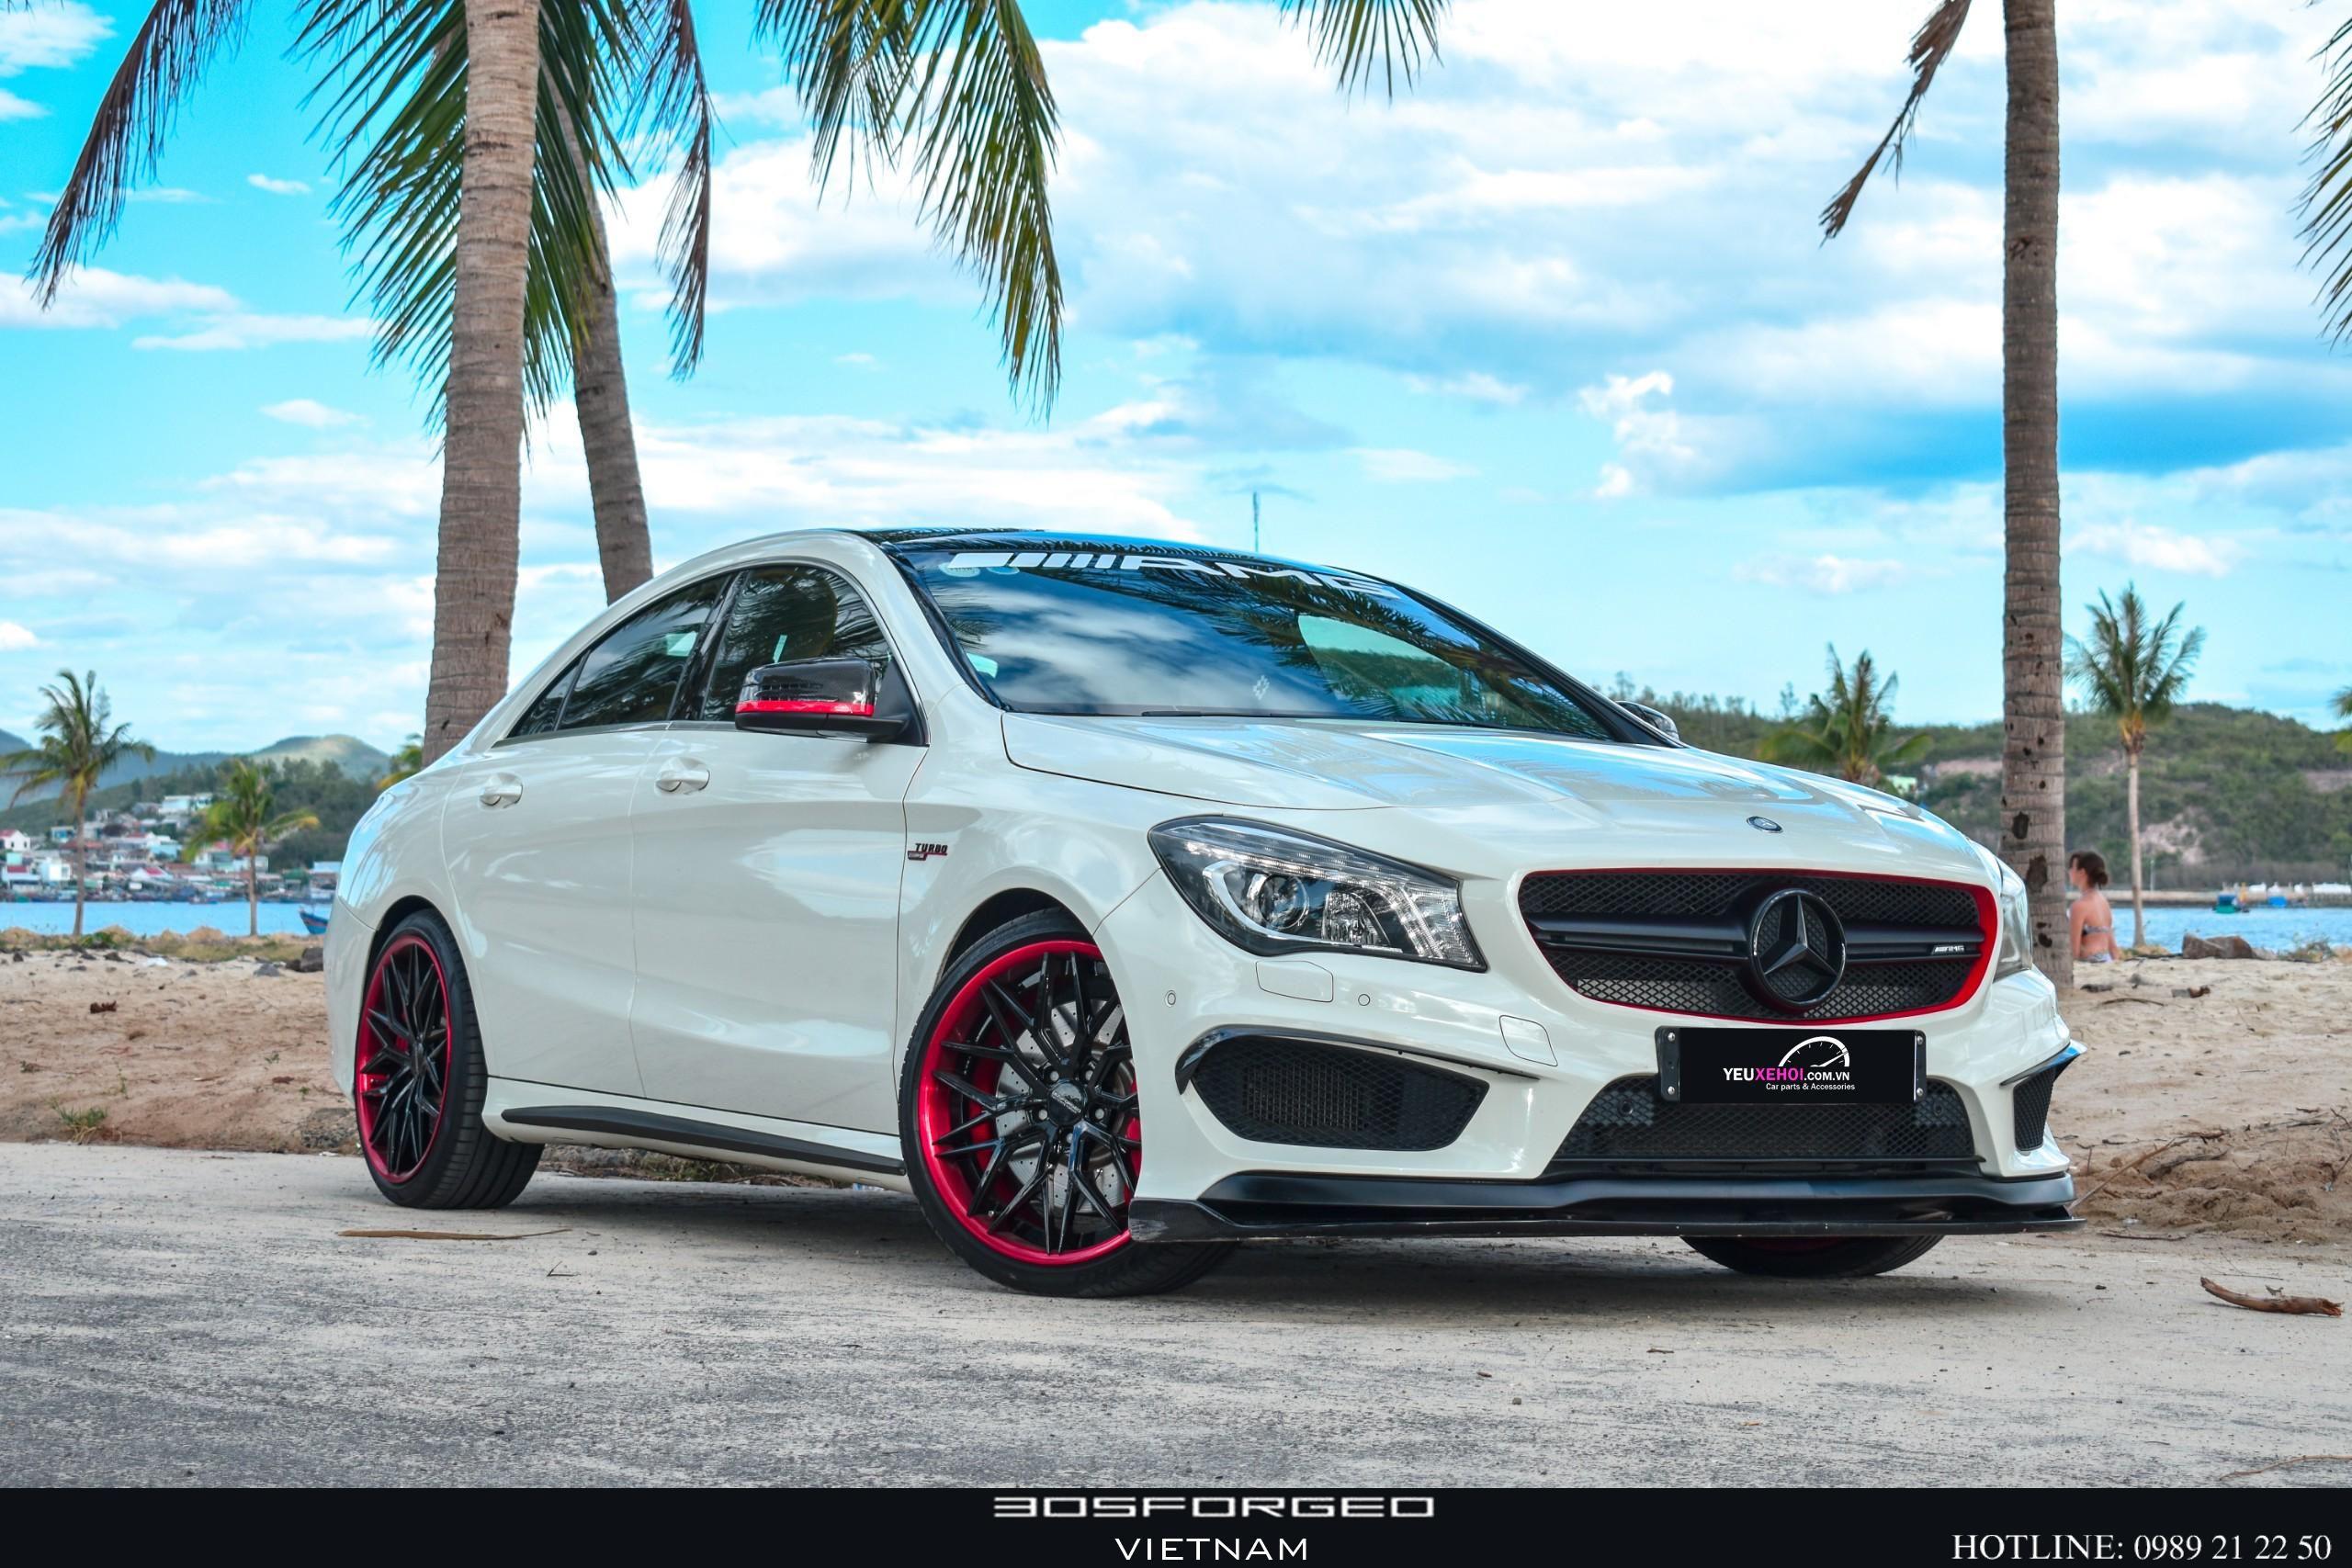 USA 305FORGED / MERCEDES CLA45 / UF2-103